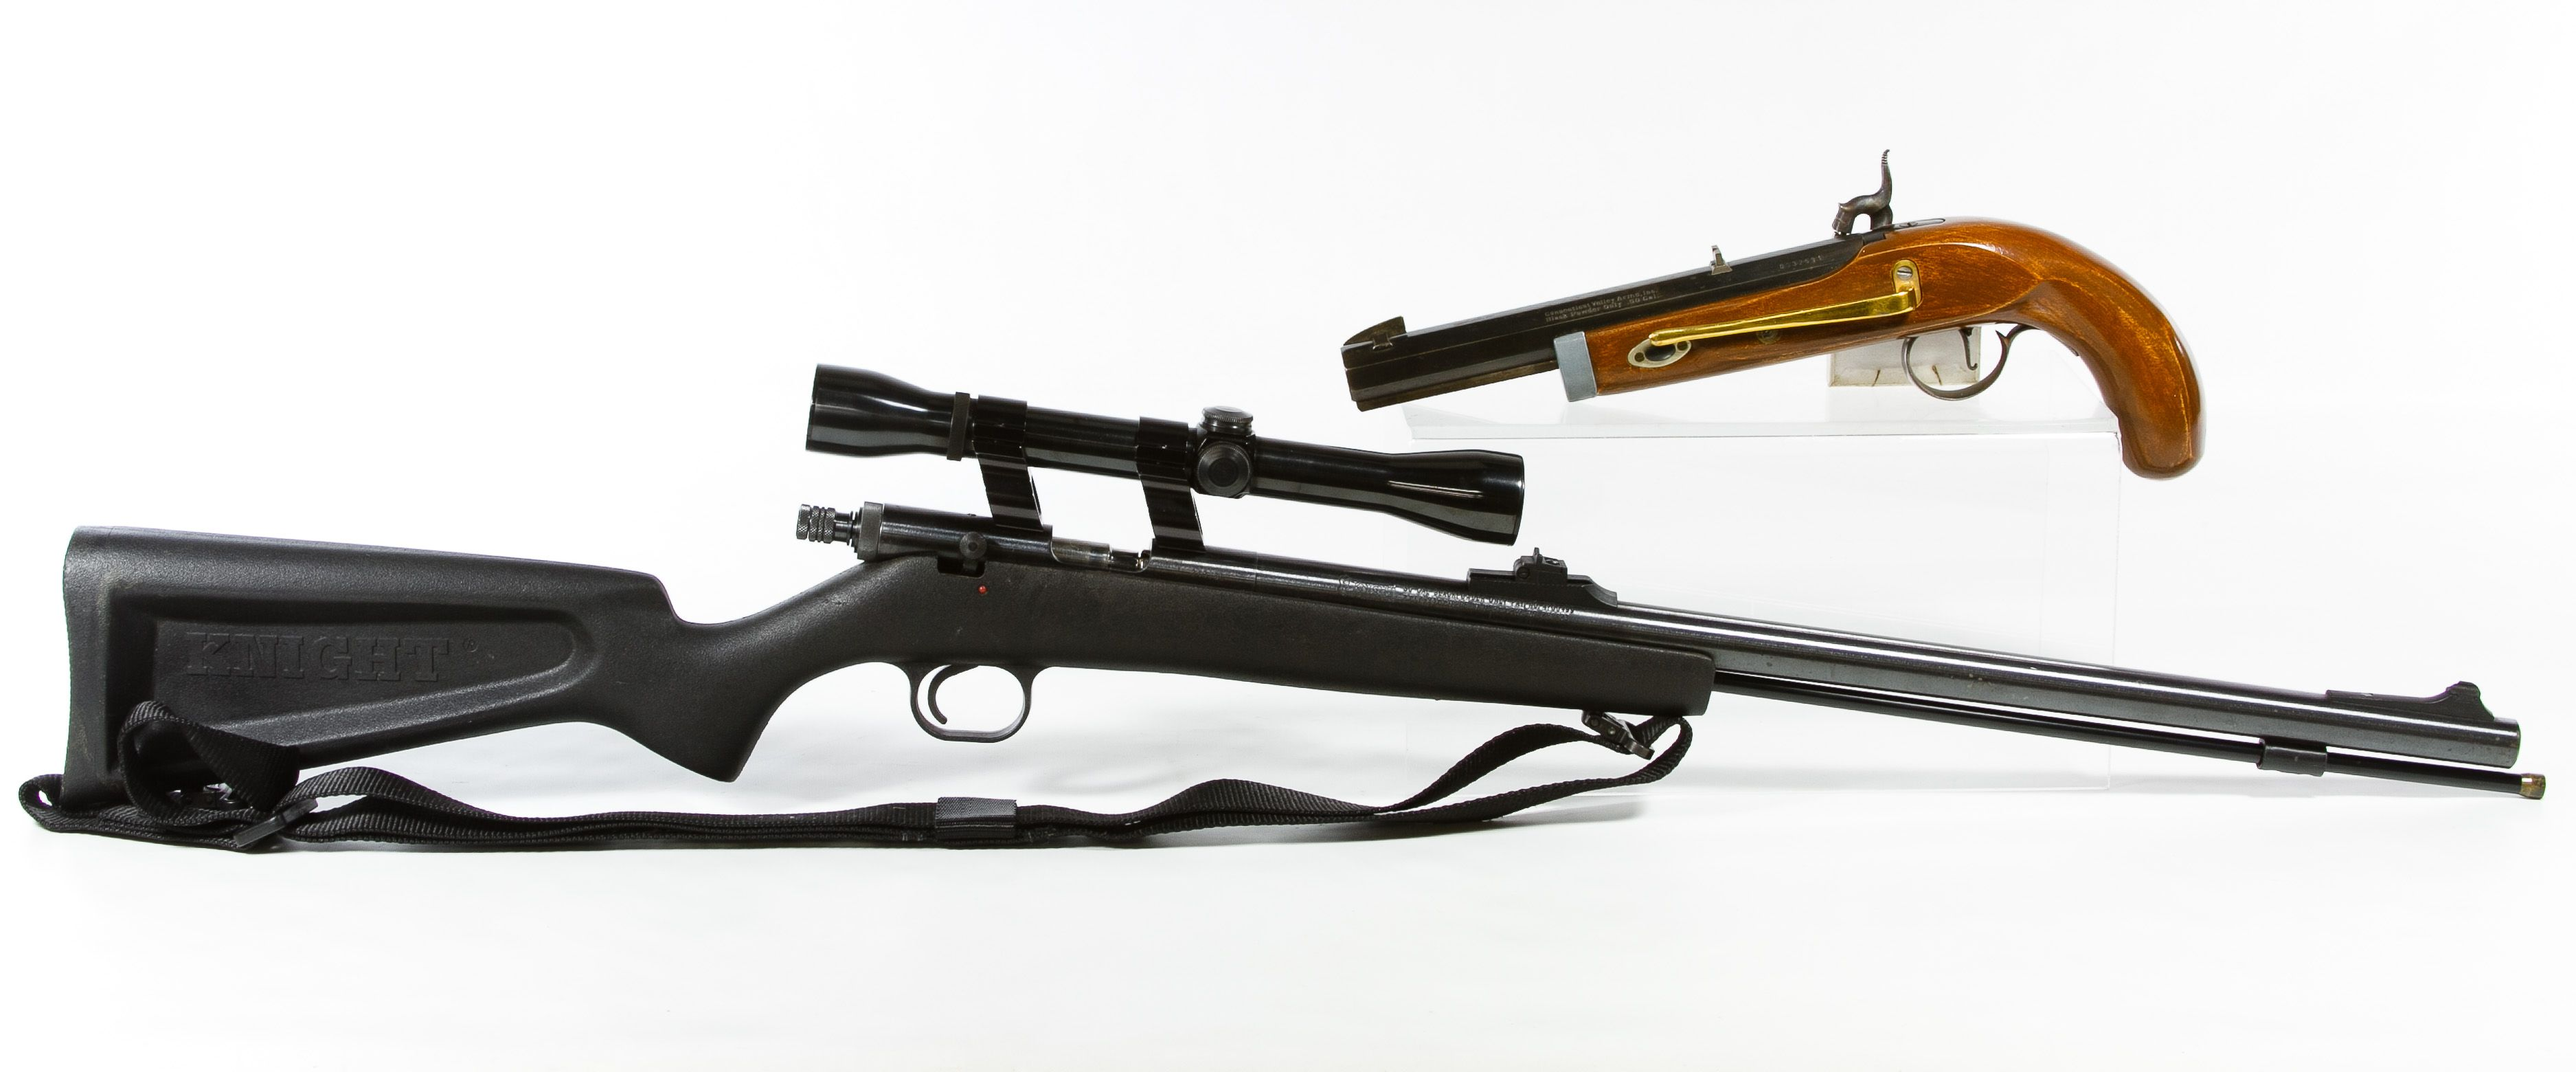 Lot 378: Black Powder Rifle (Serial #249181) and Pistol